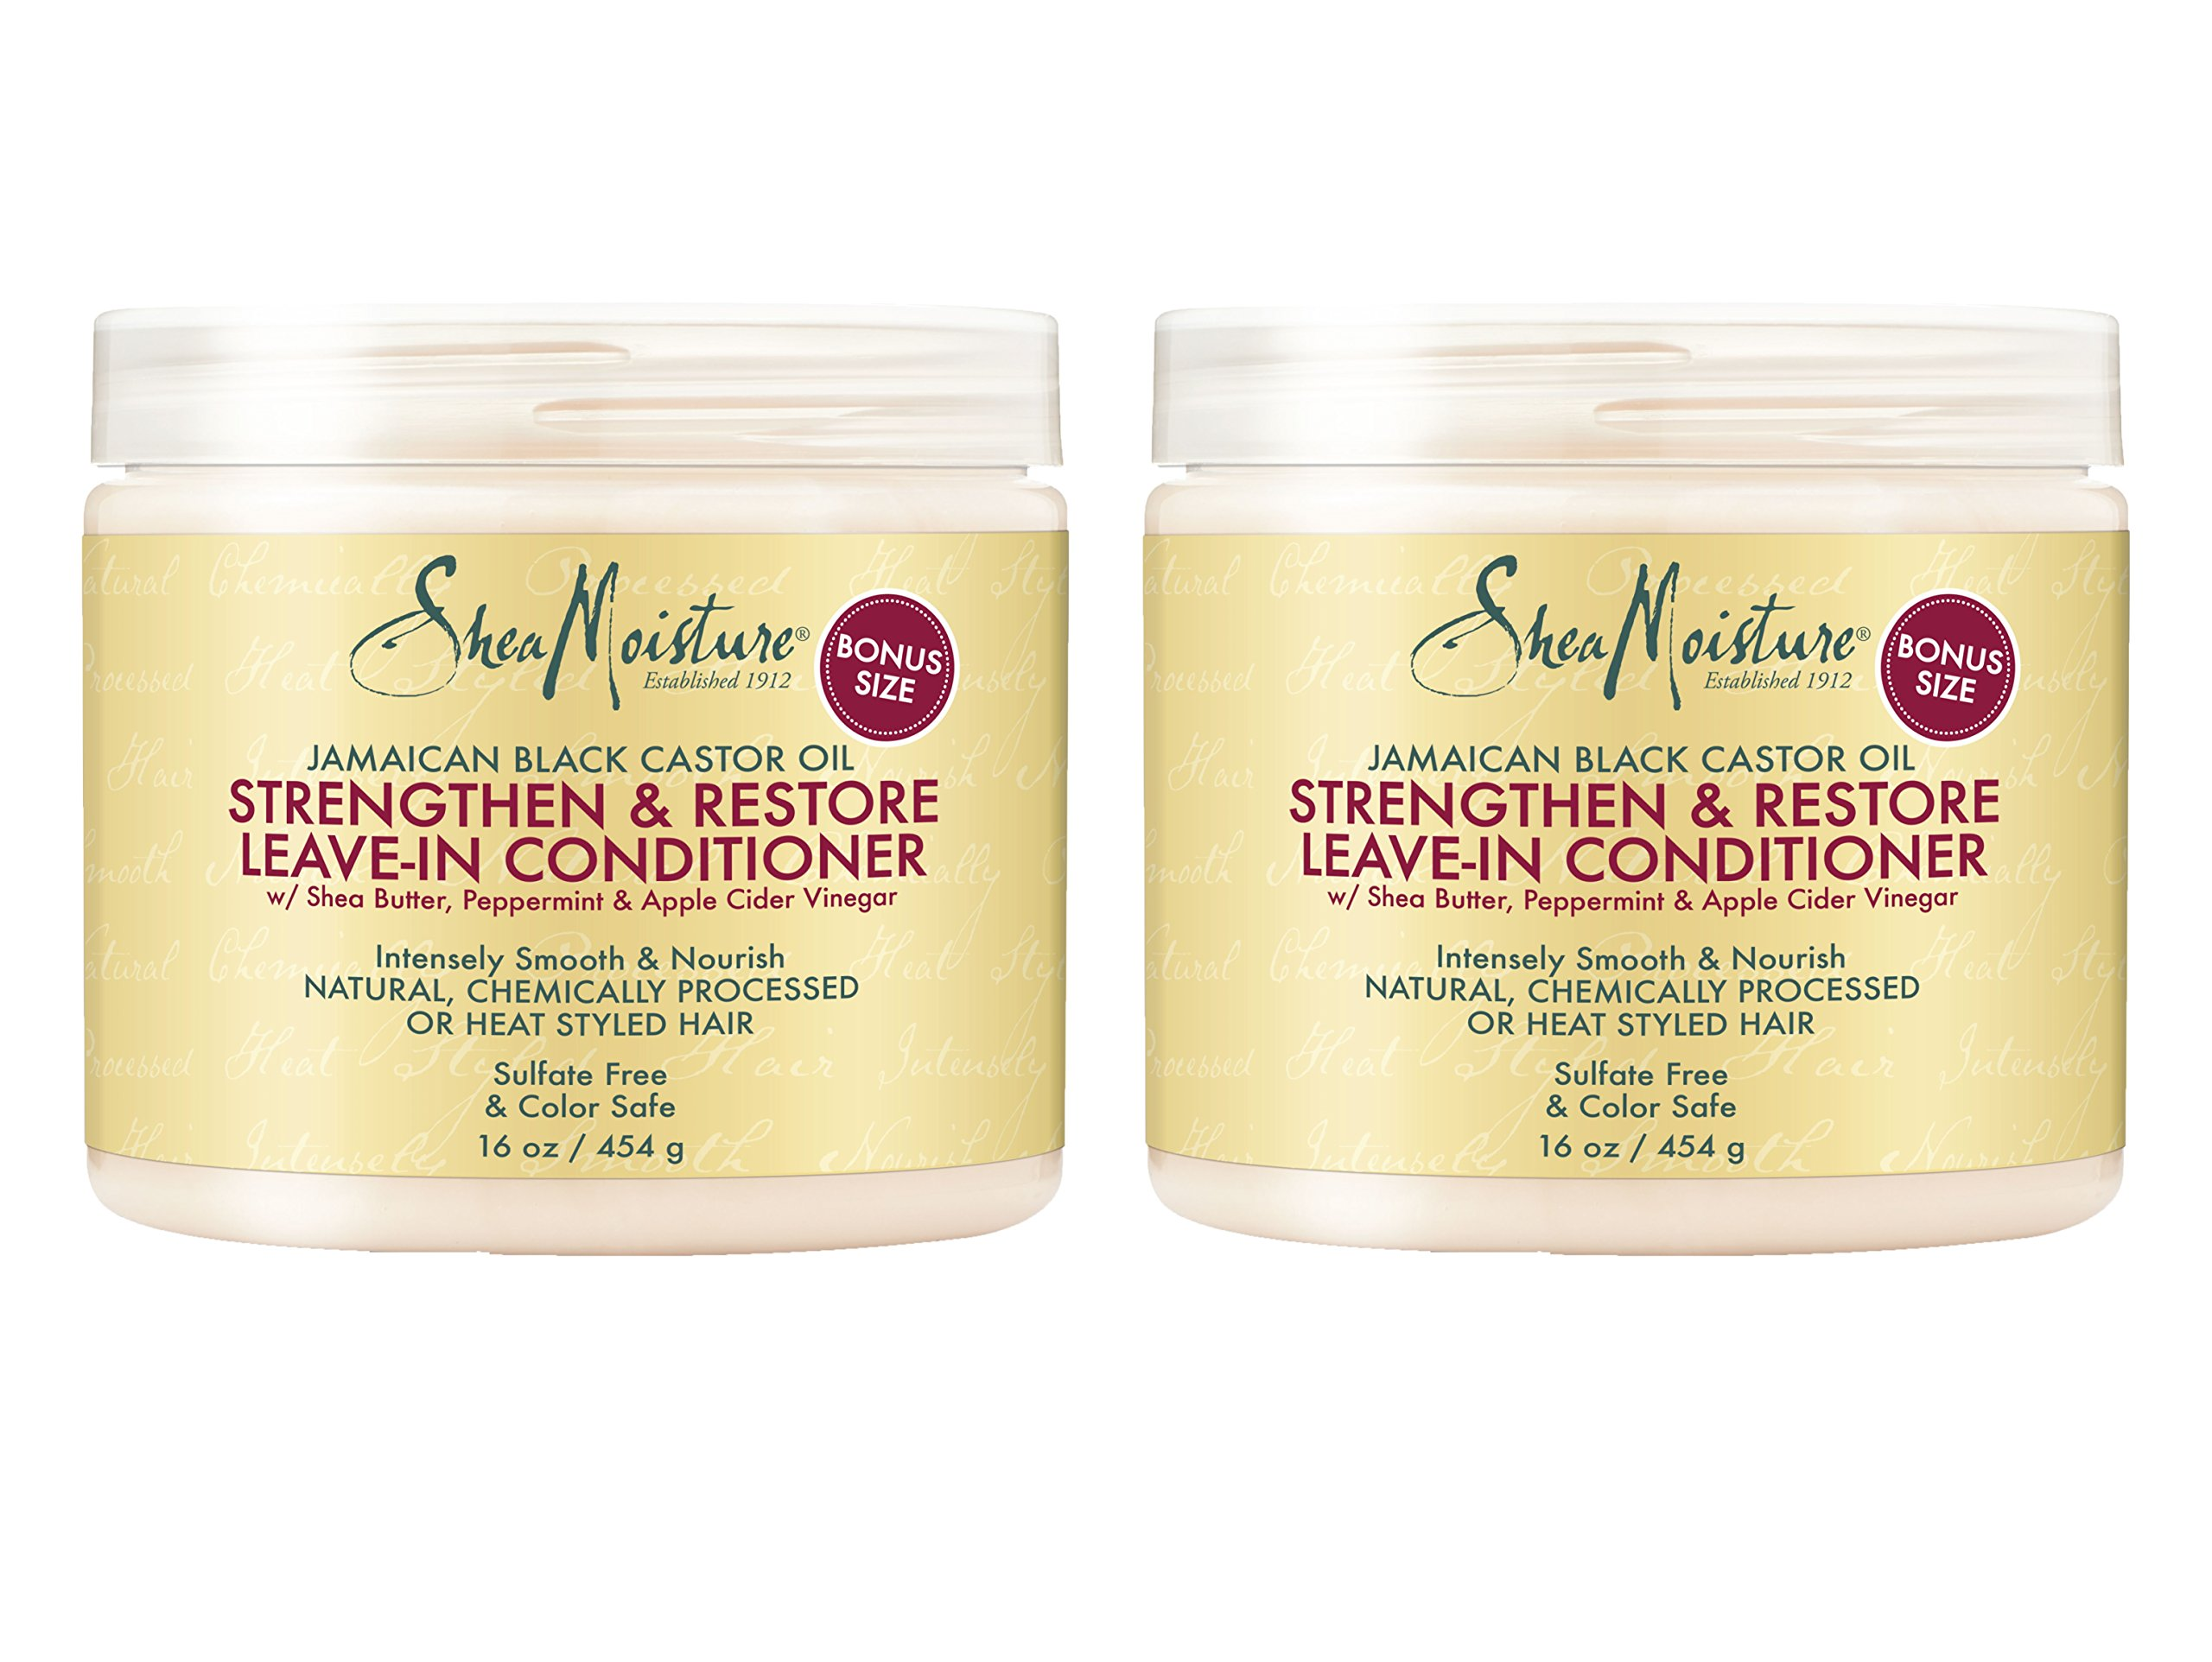 Shea Moisture Strengthen & Restore Leave-In Conditioner 16 oz (Pack of 2)